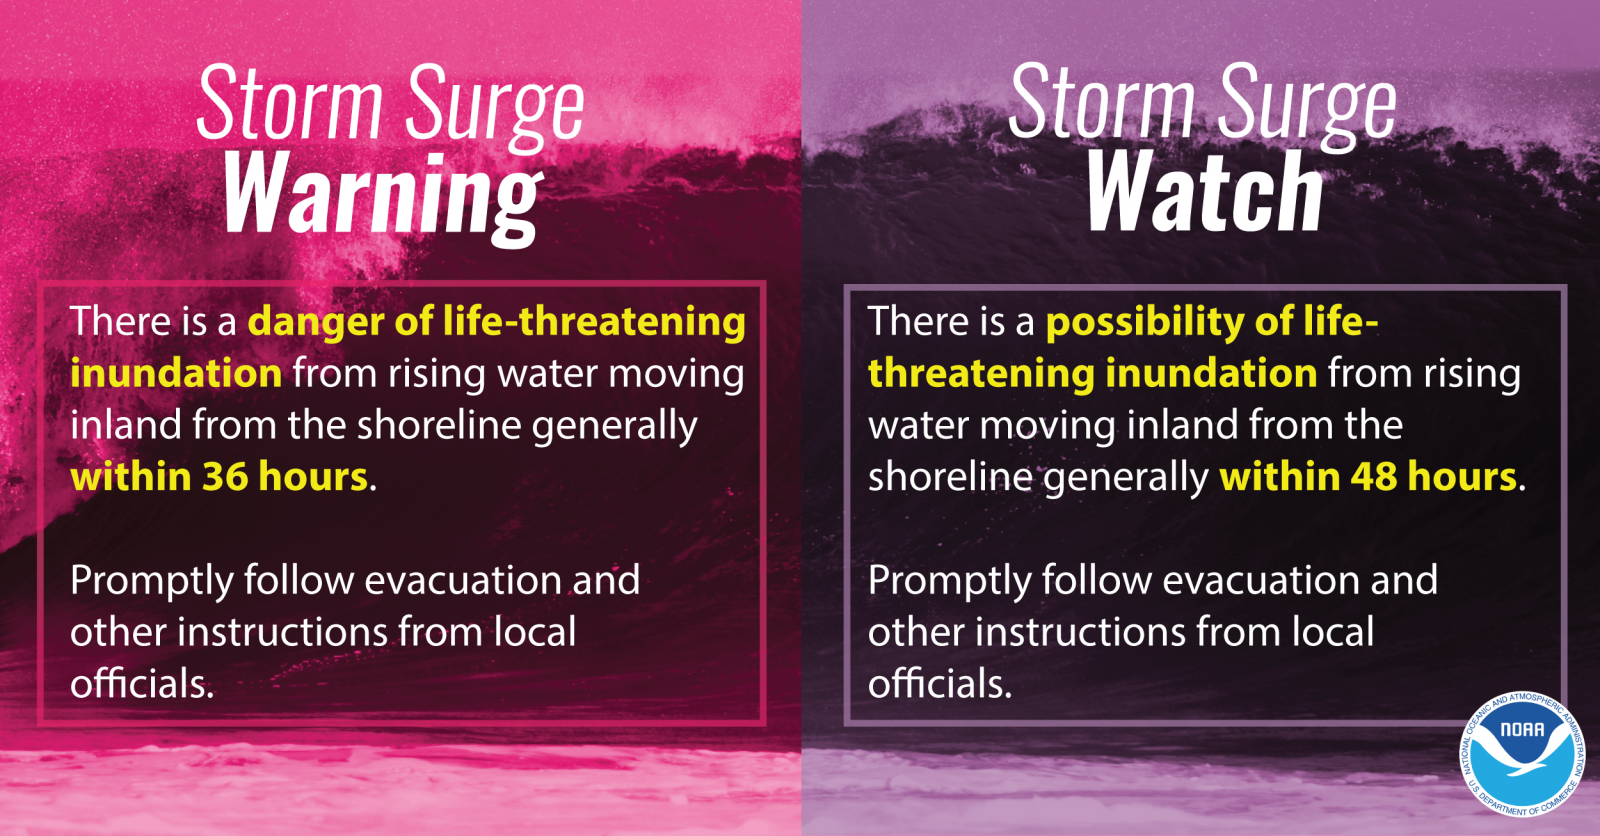 Storm Surge Warning: There is a danger of life-threatening inundation from rising water moving inland from the shoreline generally within 36 hours. Promptly follow evacuation and other instructions from local officials. Storm Surge Watch: There is a possibility of life-threatening inundation from rising water moving inland from the shoreline generally within 48 hours. Promptly follow evacuation and other instructions from local officials.